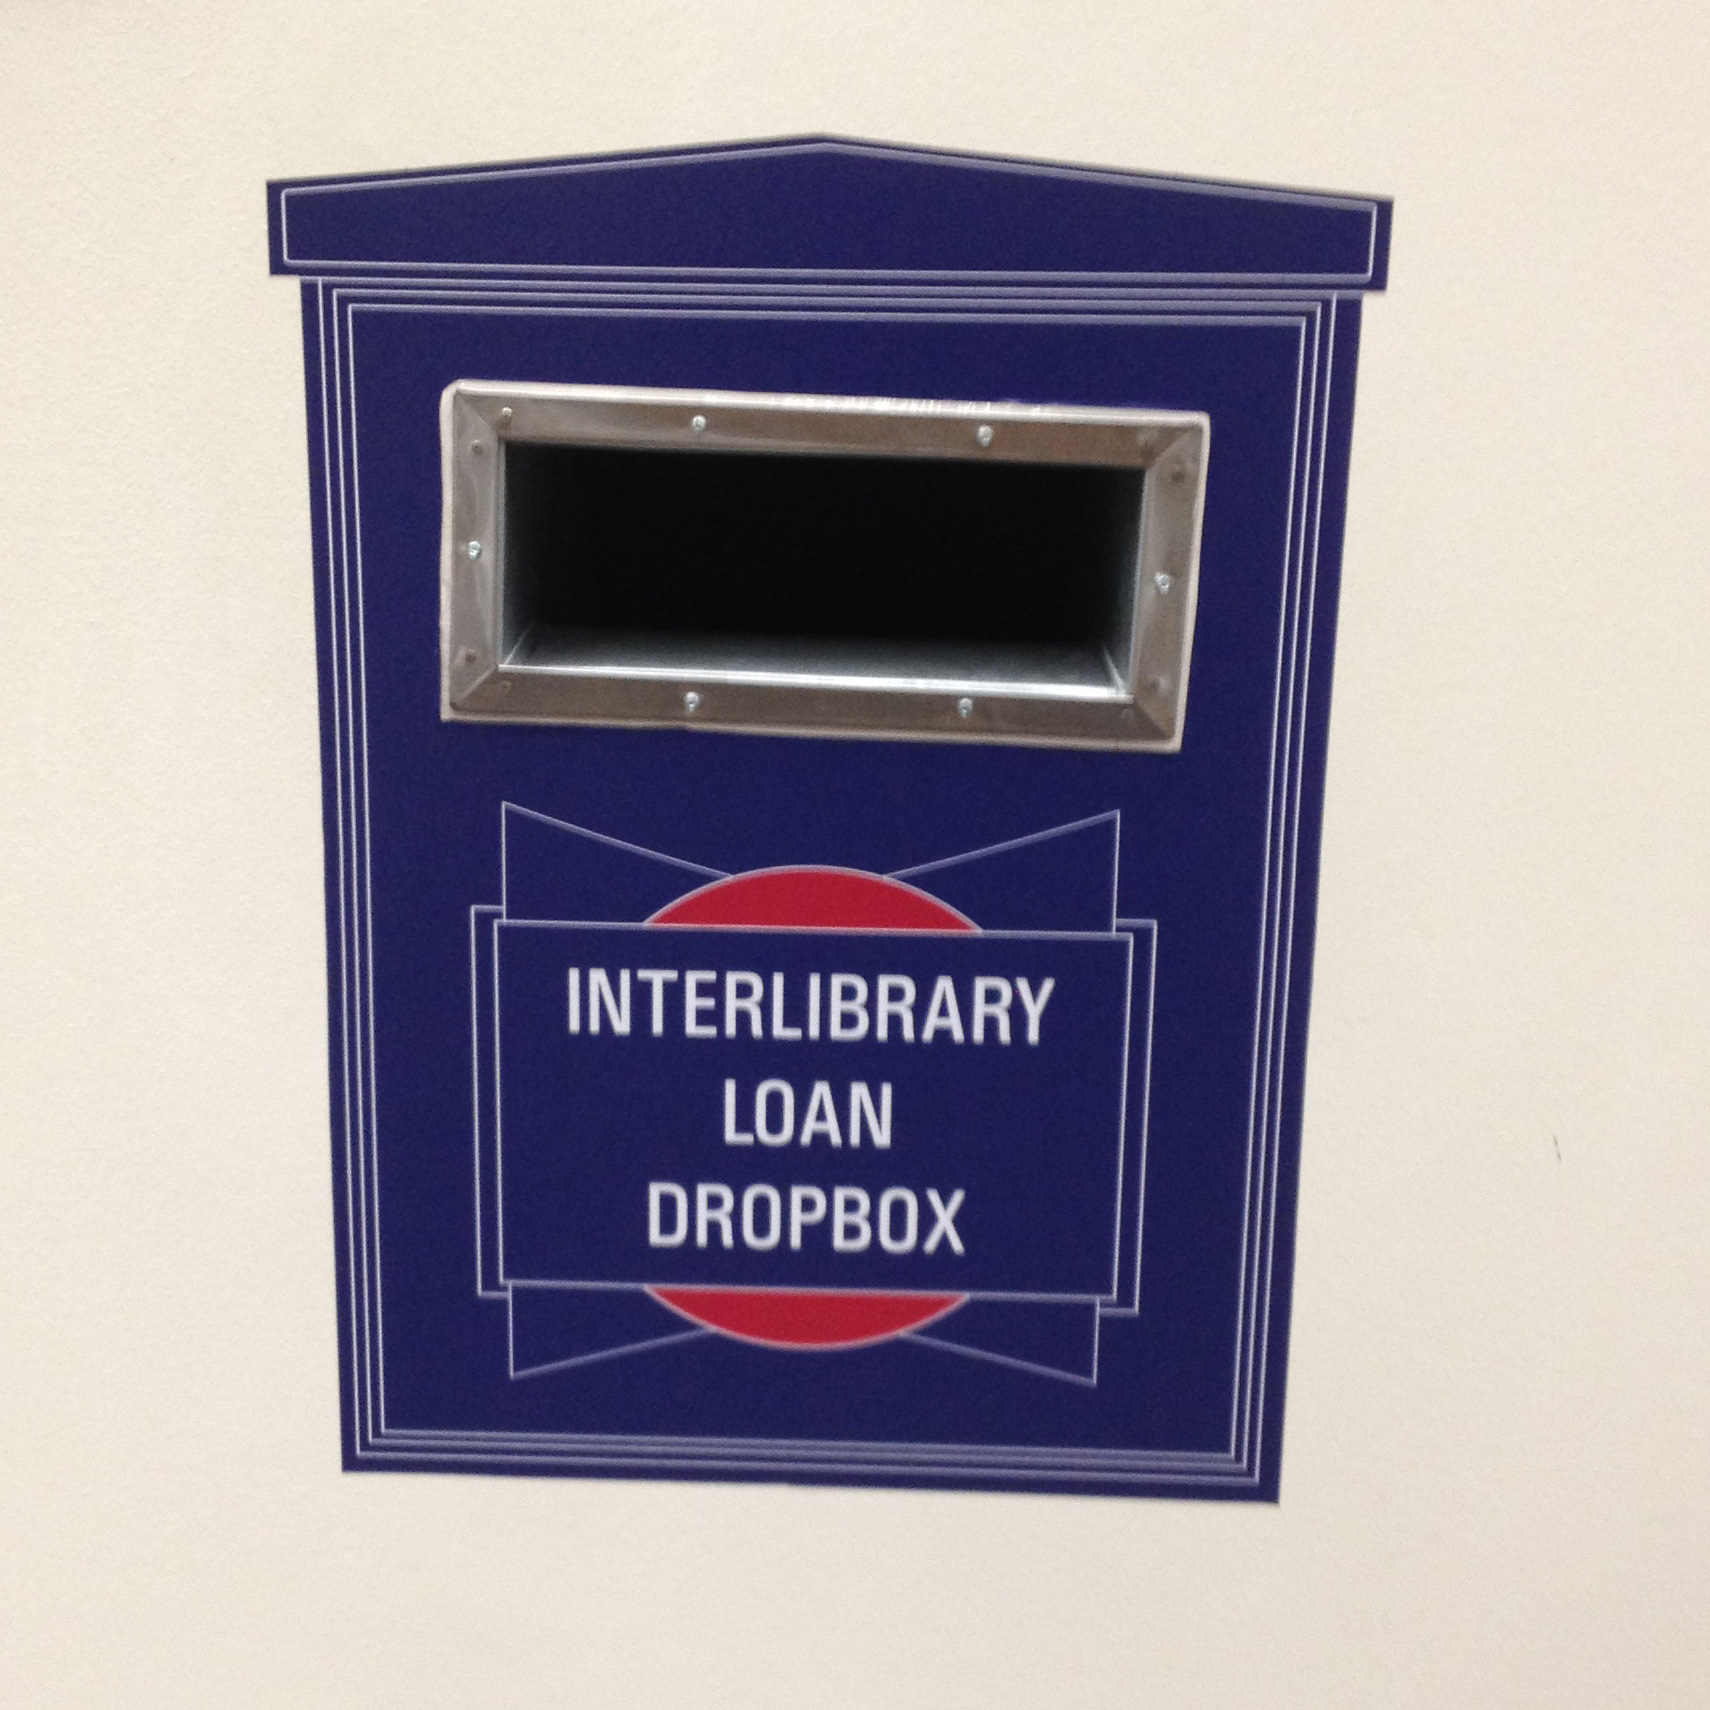 Interlibrary Loan Fee Increase And New Pick-up/drop Off